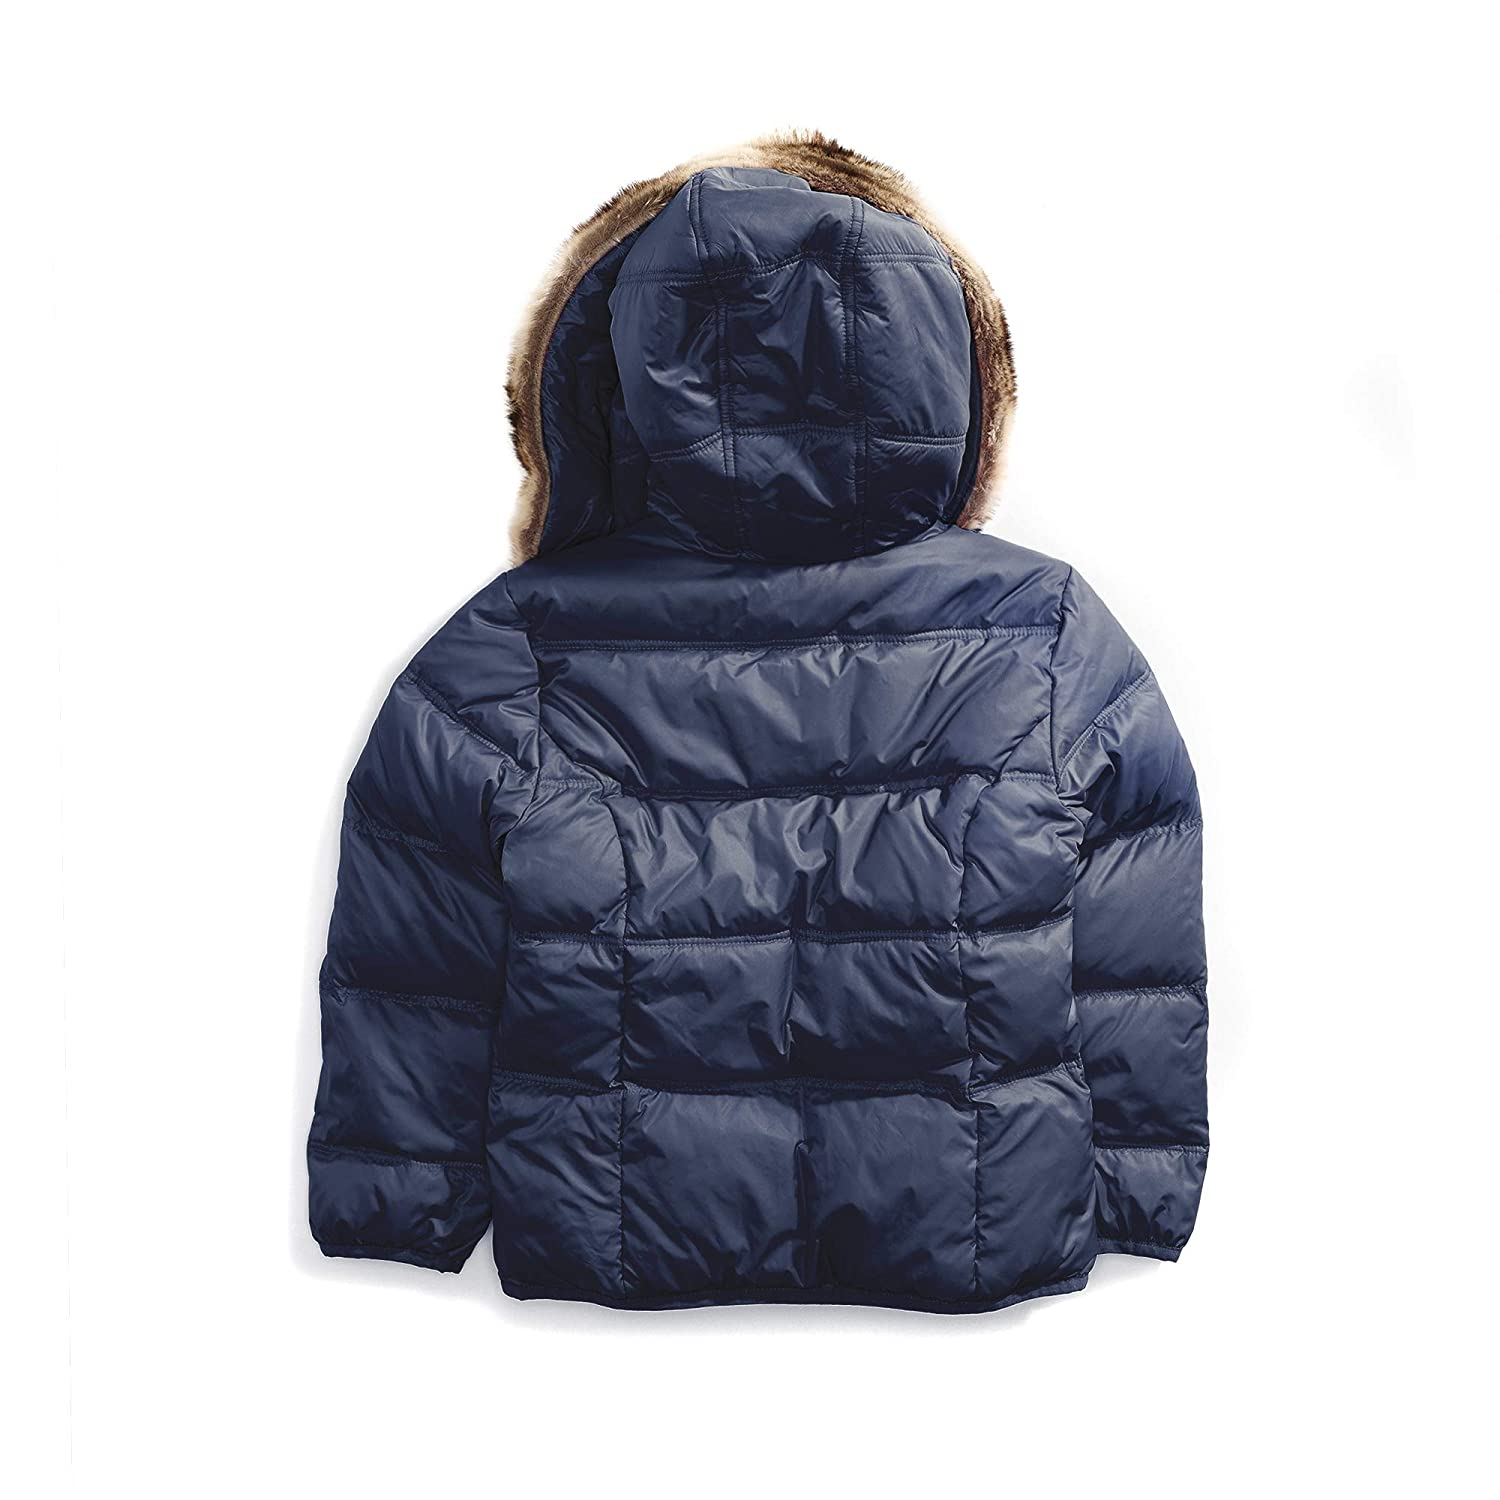 Tommy Hilfiger Adaptive Girls Puffer Jacket with Magnetic Buttons and Faux Fur Hood 7182781